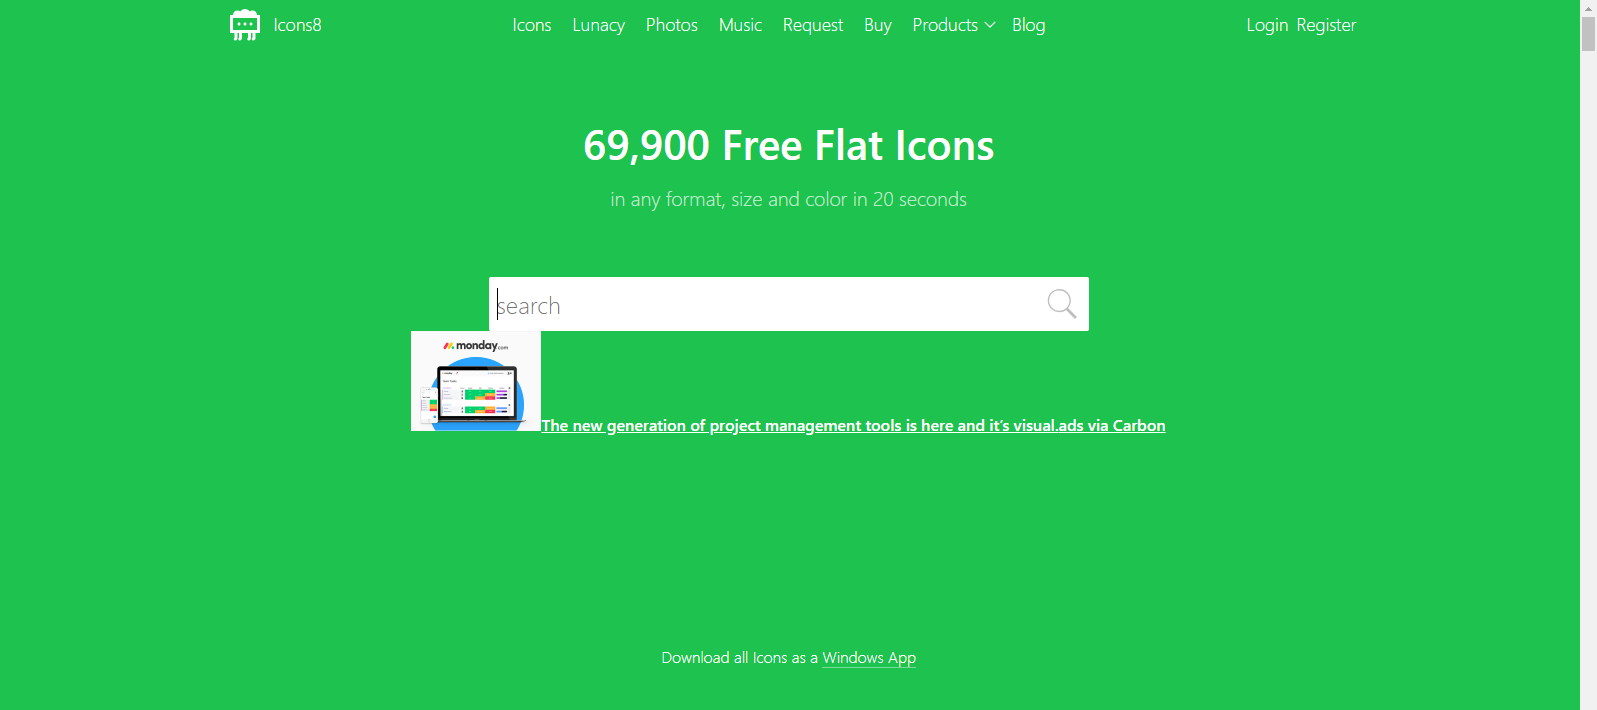 Screen capture of icons8.com